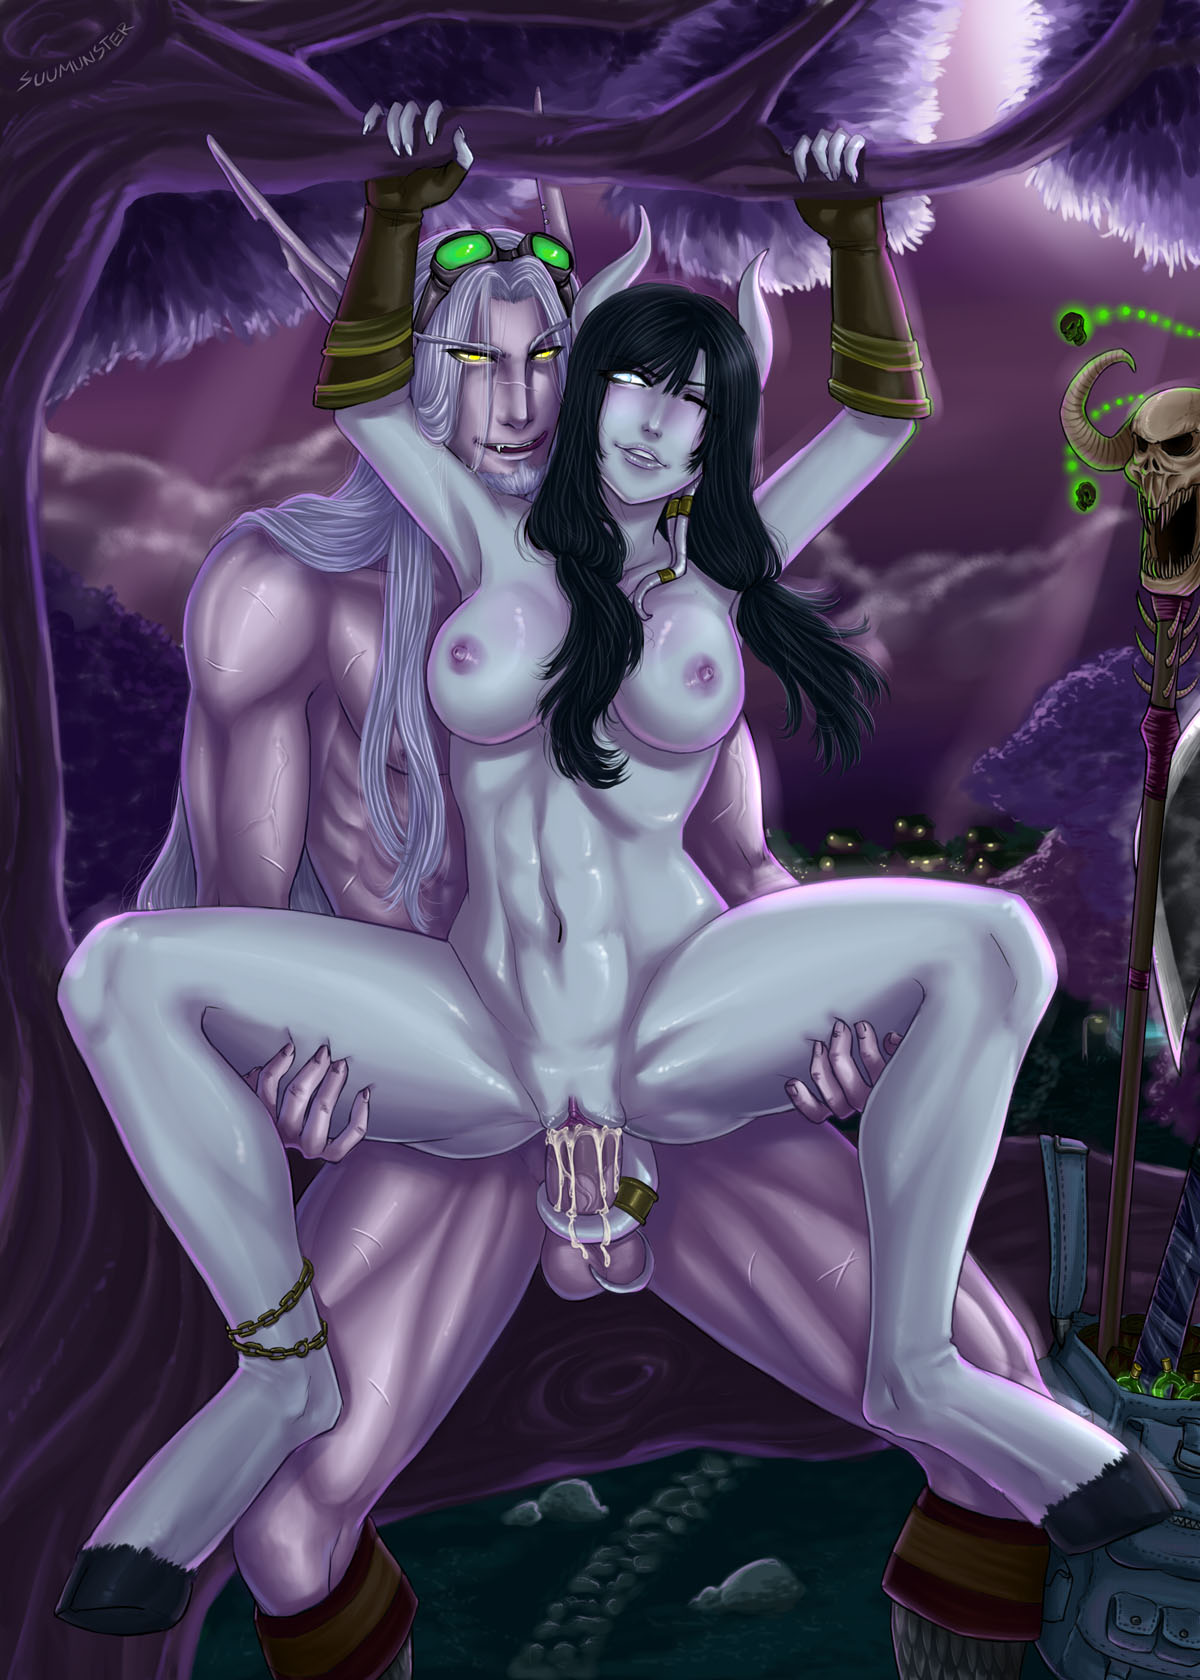 Warcraft hentai night pic nudes pictures